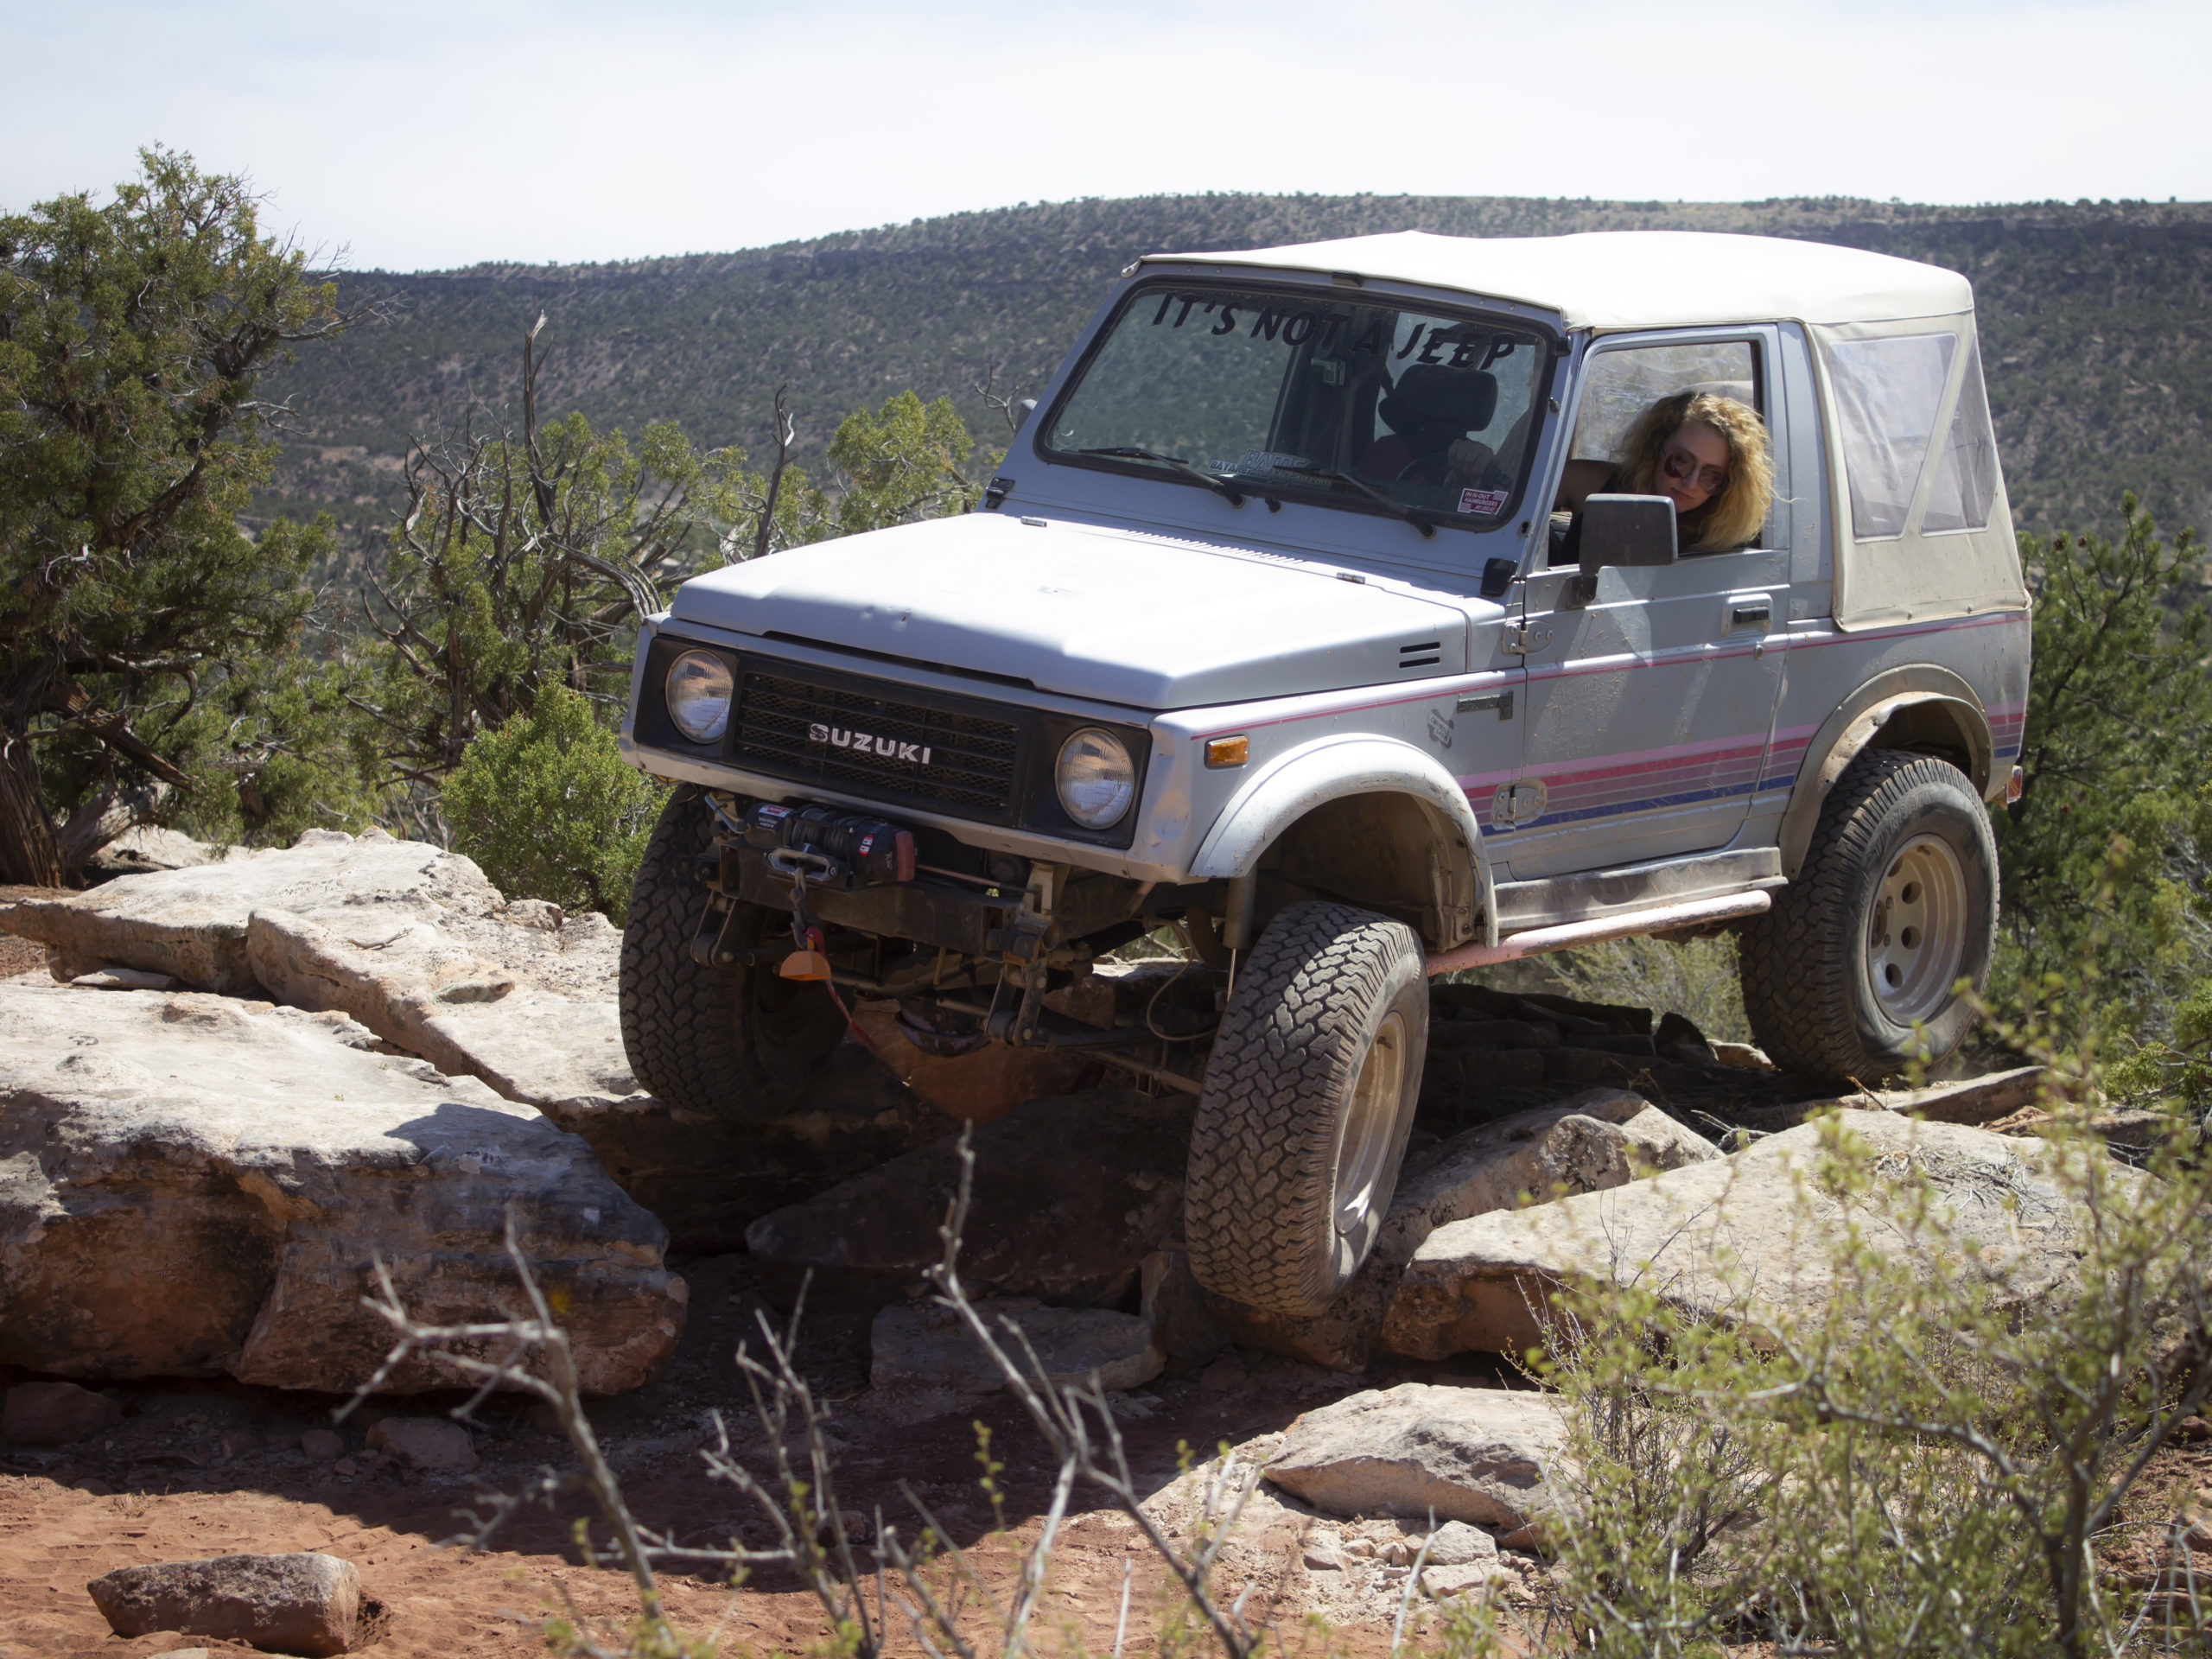 Suzuki Samurai, Amber Turner, custom rock sliders